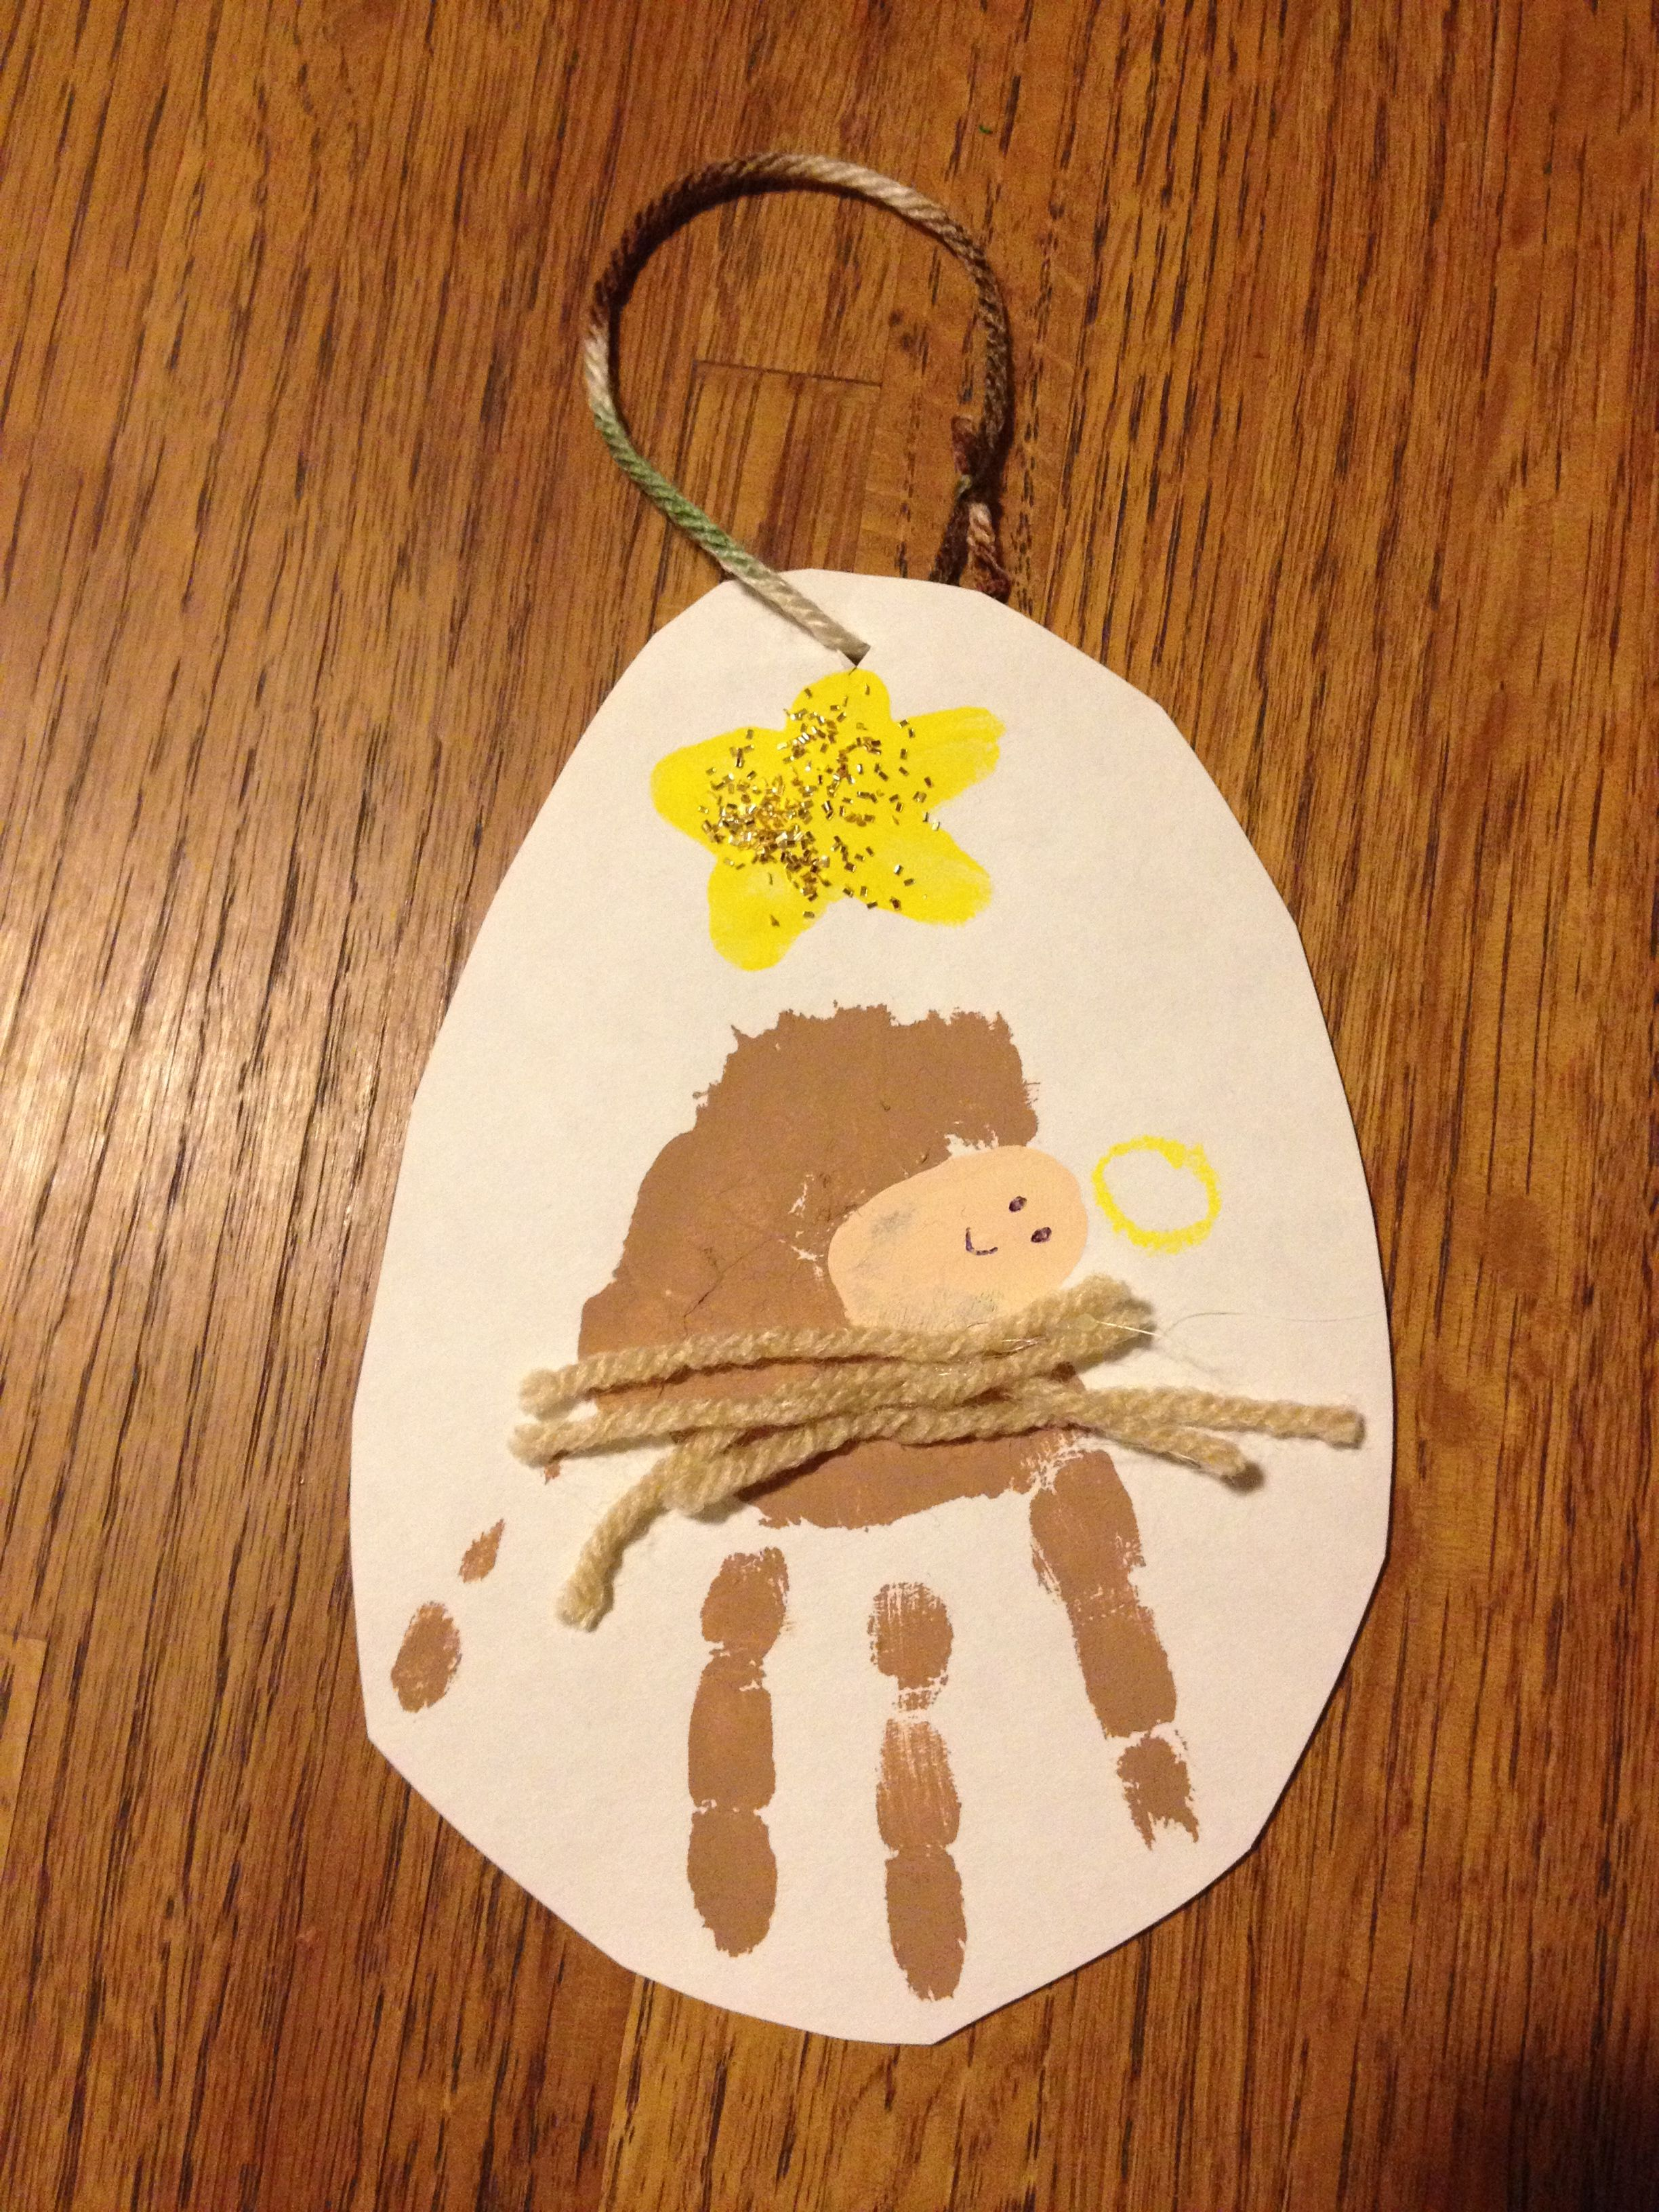 Rolling pin ornament - Photo Courtesy Away In A Manger Ornament